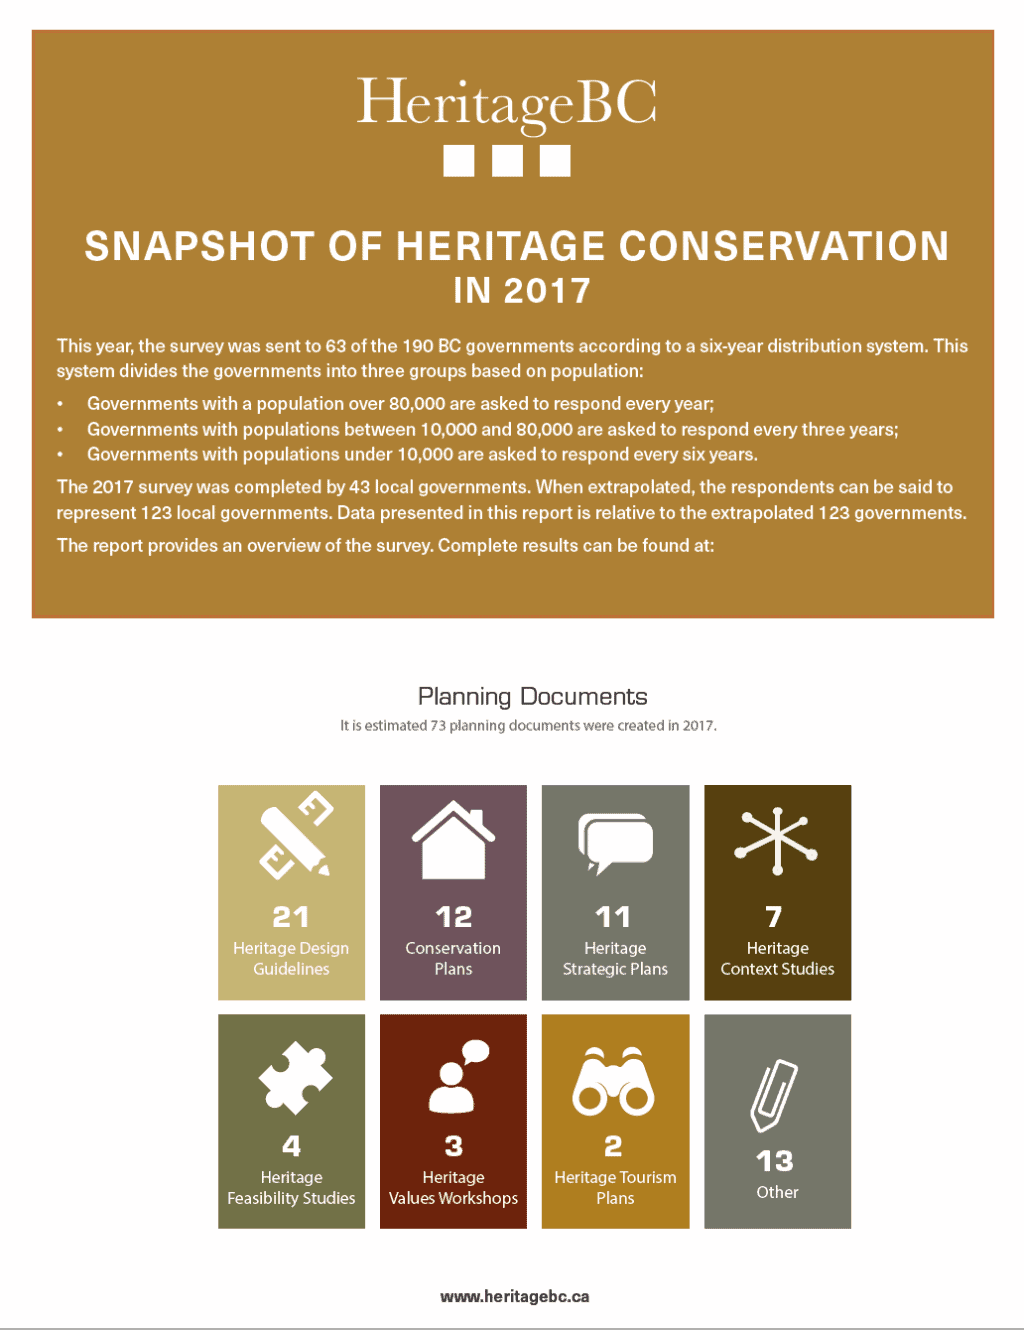 Snapshot of Heritage Conservation in 2017